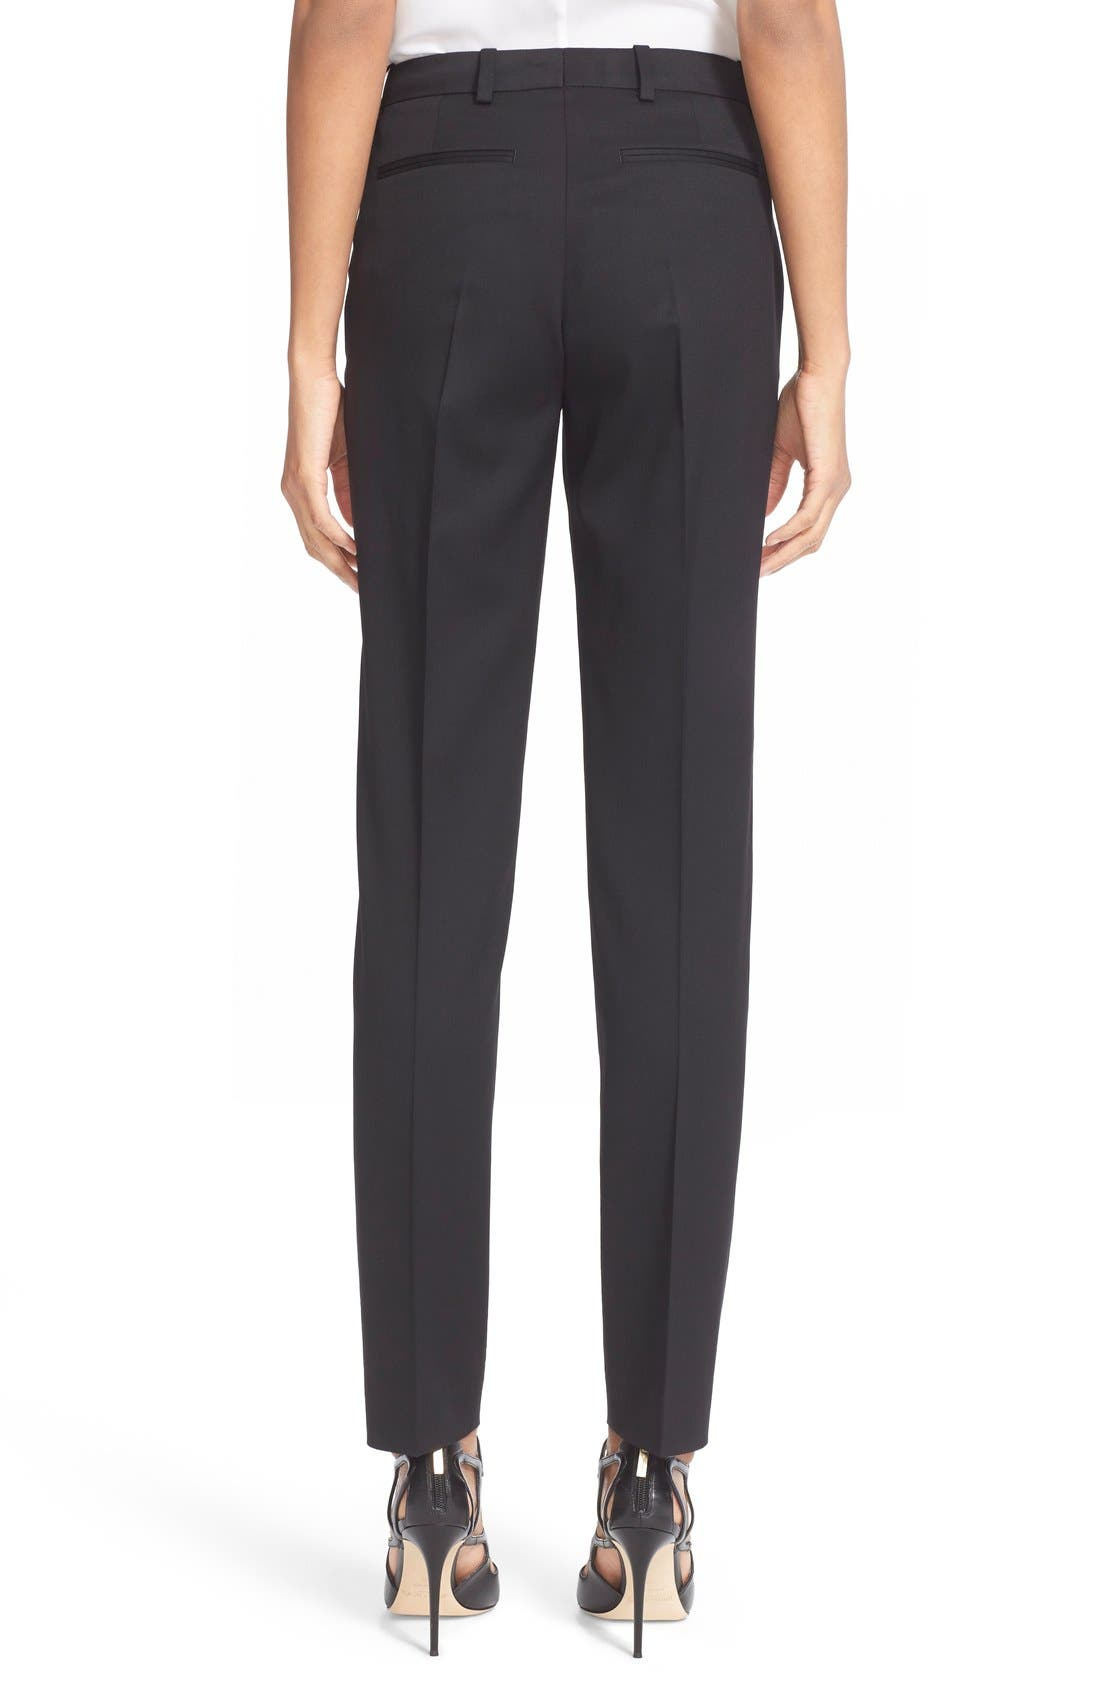 'Timeless' Stretch Wool Trousers,                             Alternate thumbnail 4, color,                             001